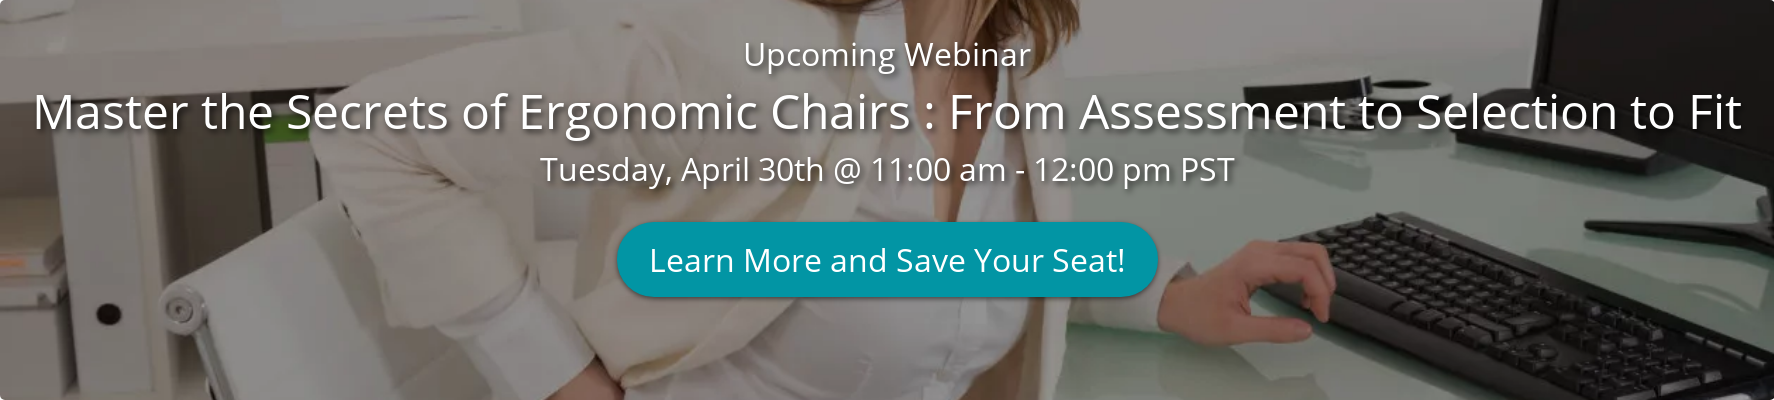 Upcoming Webinar Master the Secrets of Ergonomic Chairs : From Assessment to  Selection to Fit Tuesday, April 30th @ 11:00 am - 12:00 pm PST Learn More and  Save Your Seat!